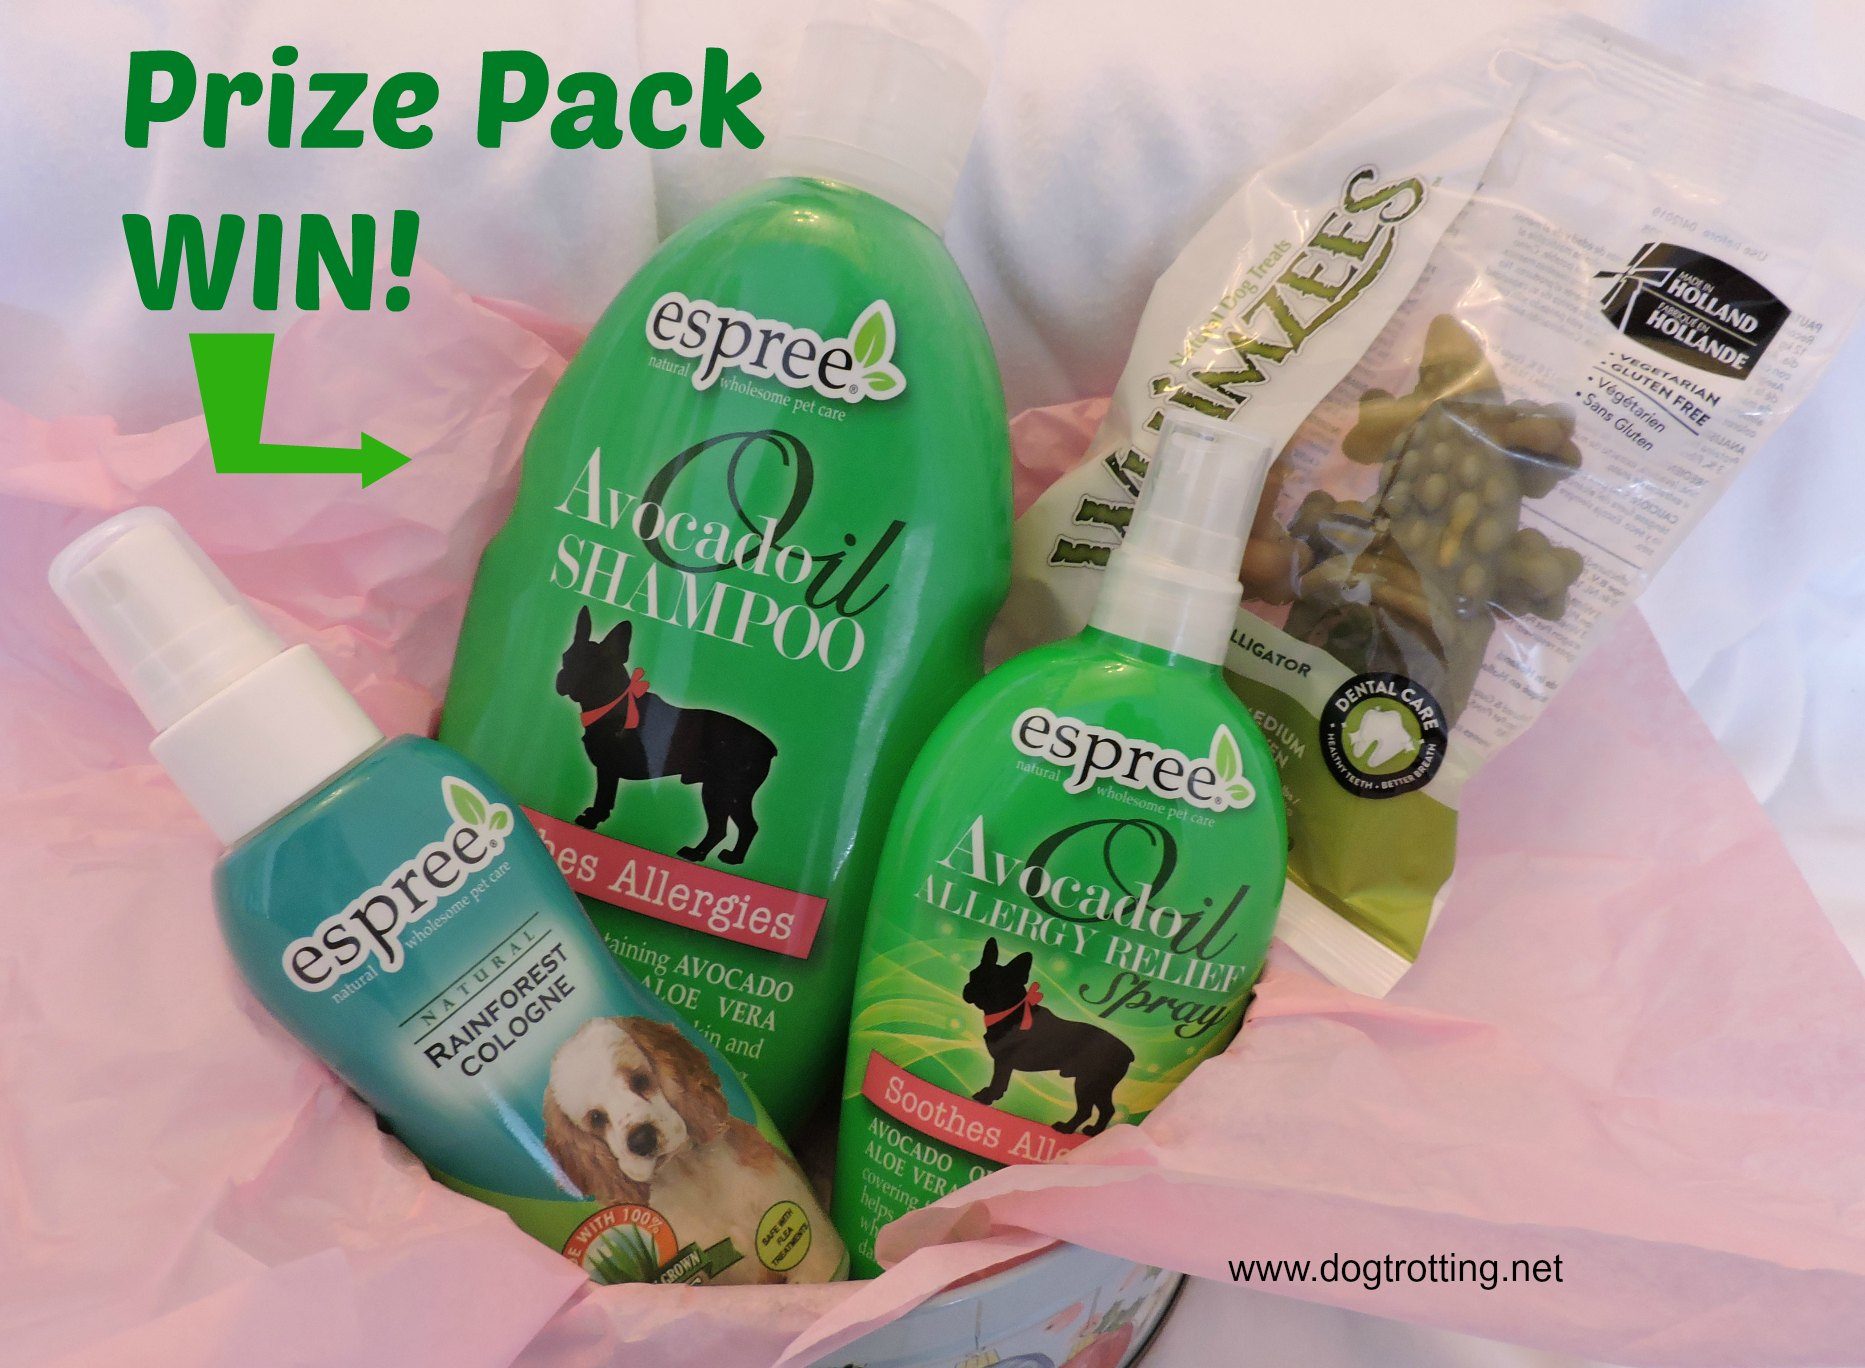 prize pack of Espree dog shampoo